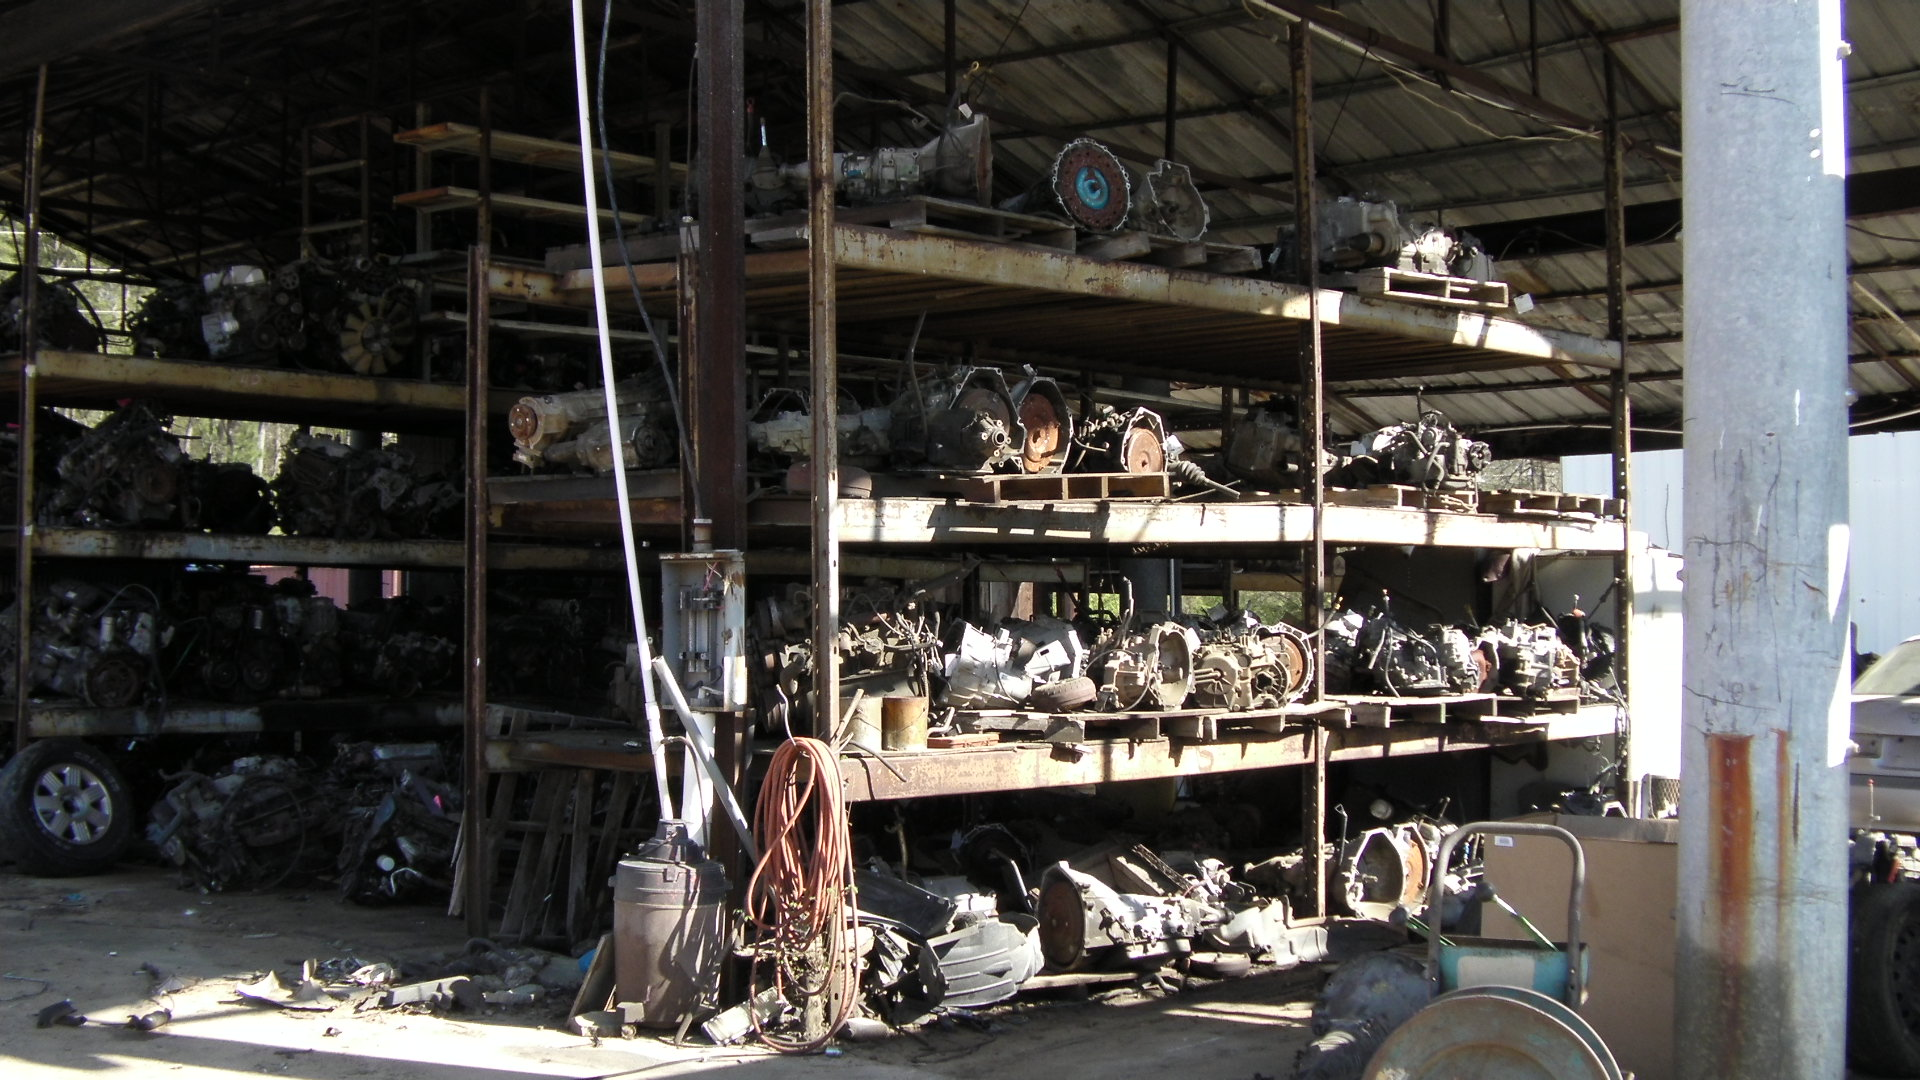 First time at a junk yard, here is what to expect